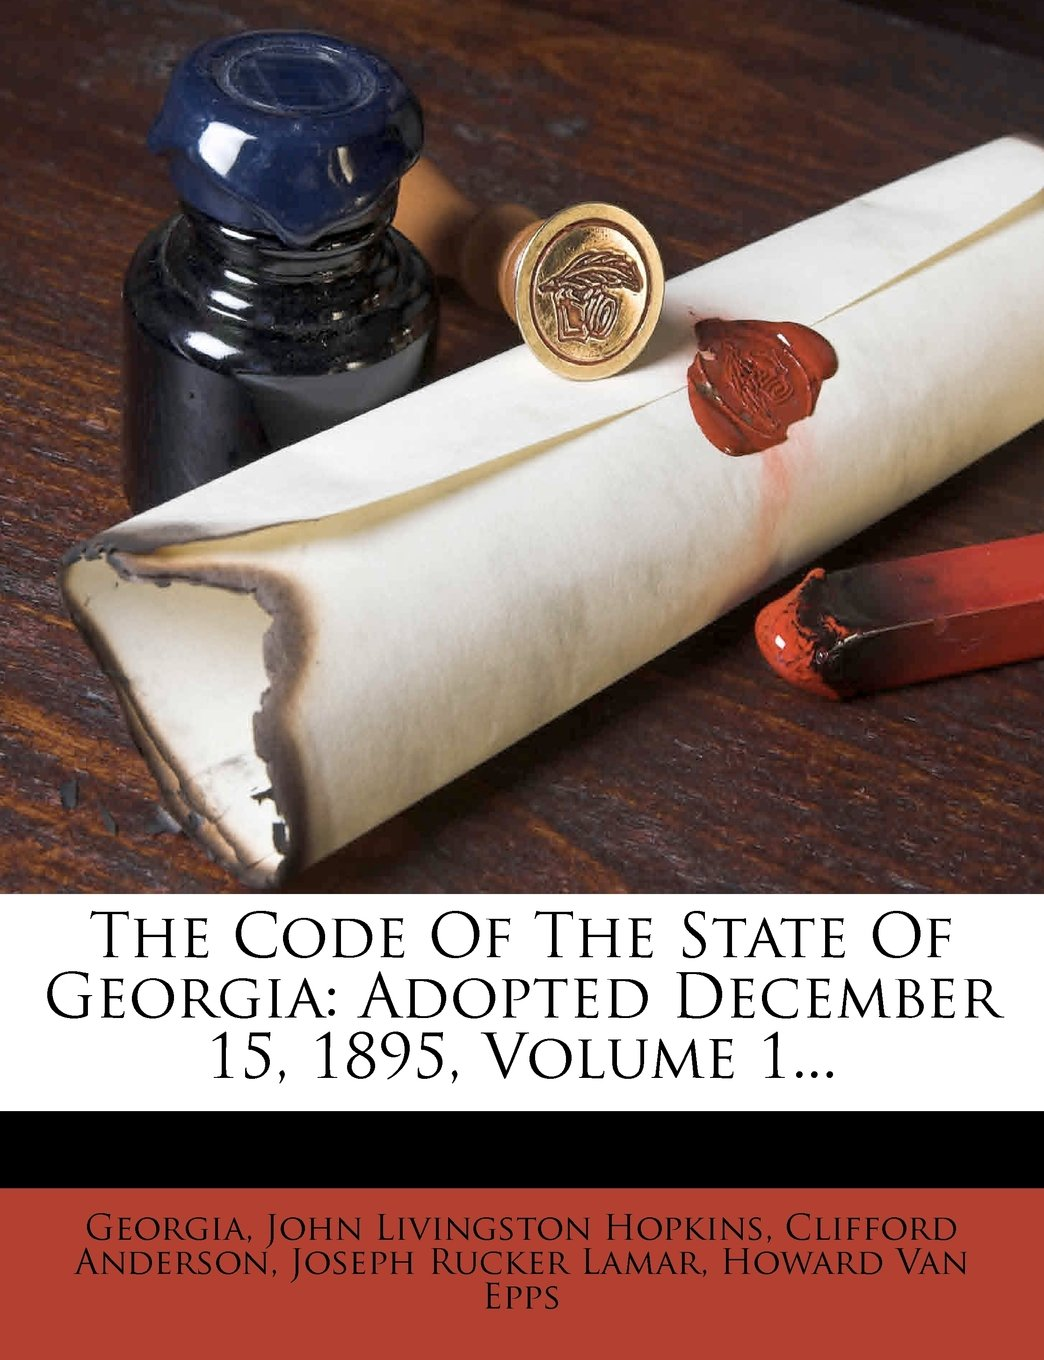 The Code Of The State Of Georgia: Adopted December 15, 1895, Volume 1... ebook